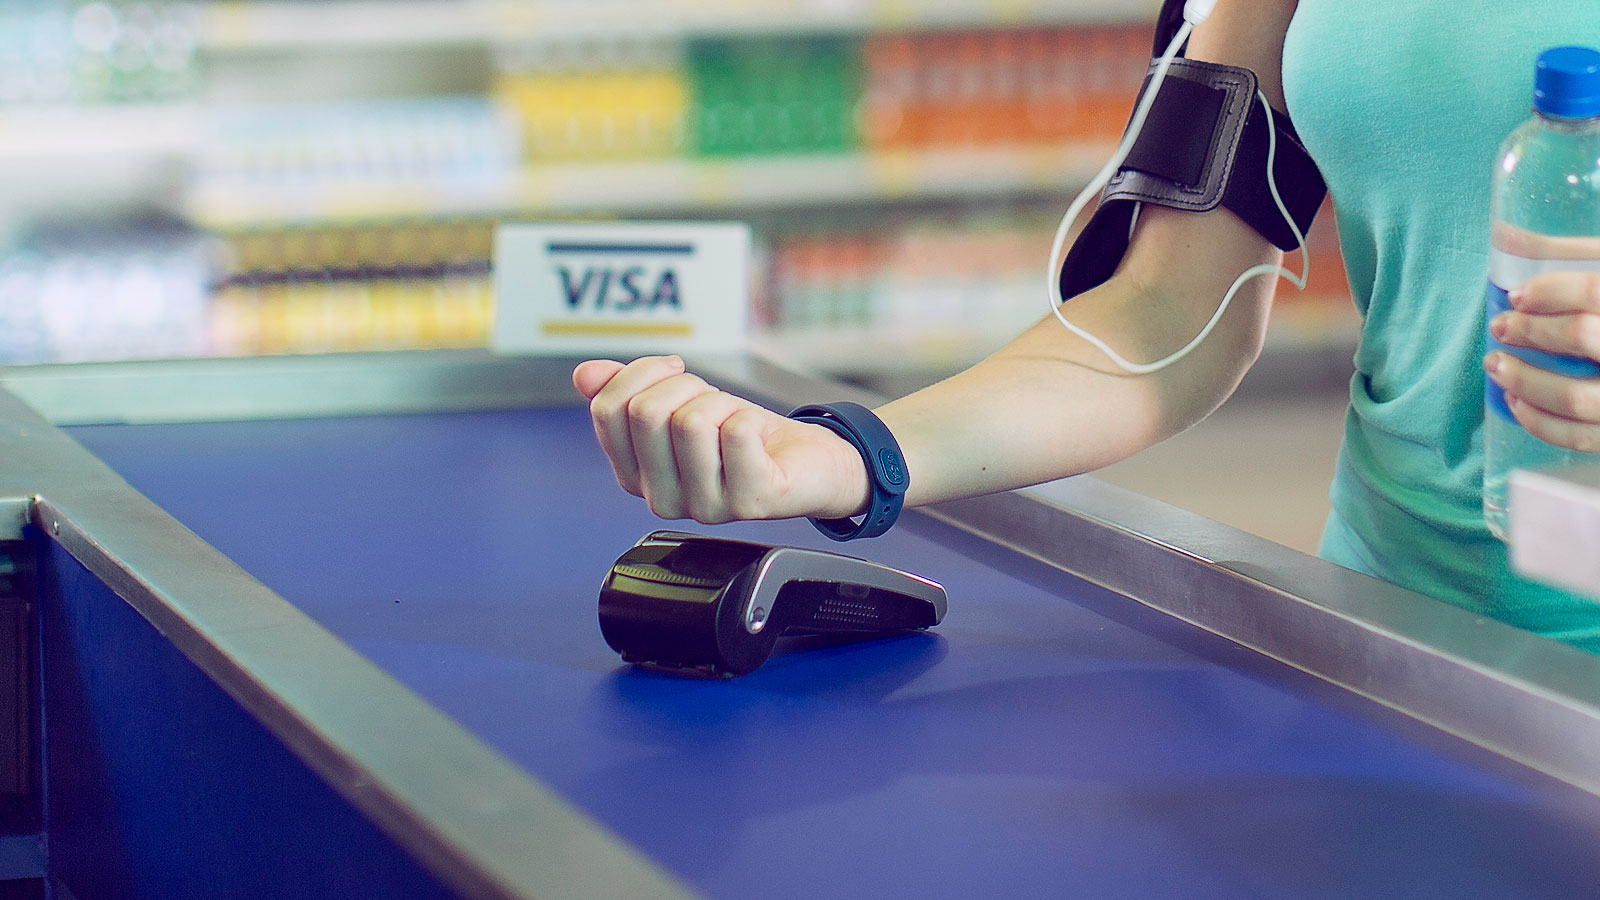 Visa - Pay while you work out